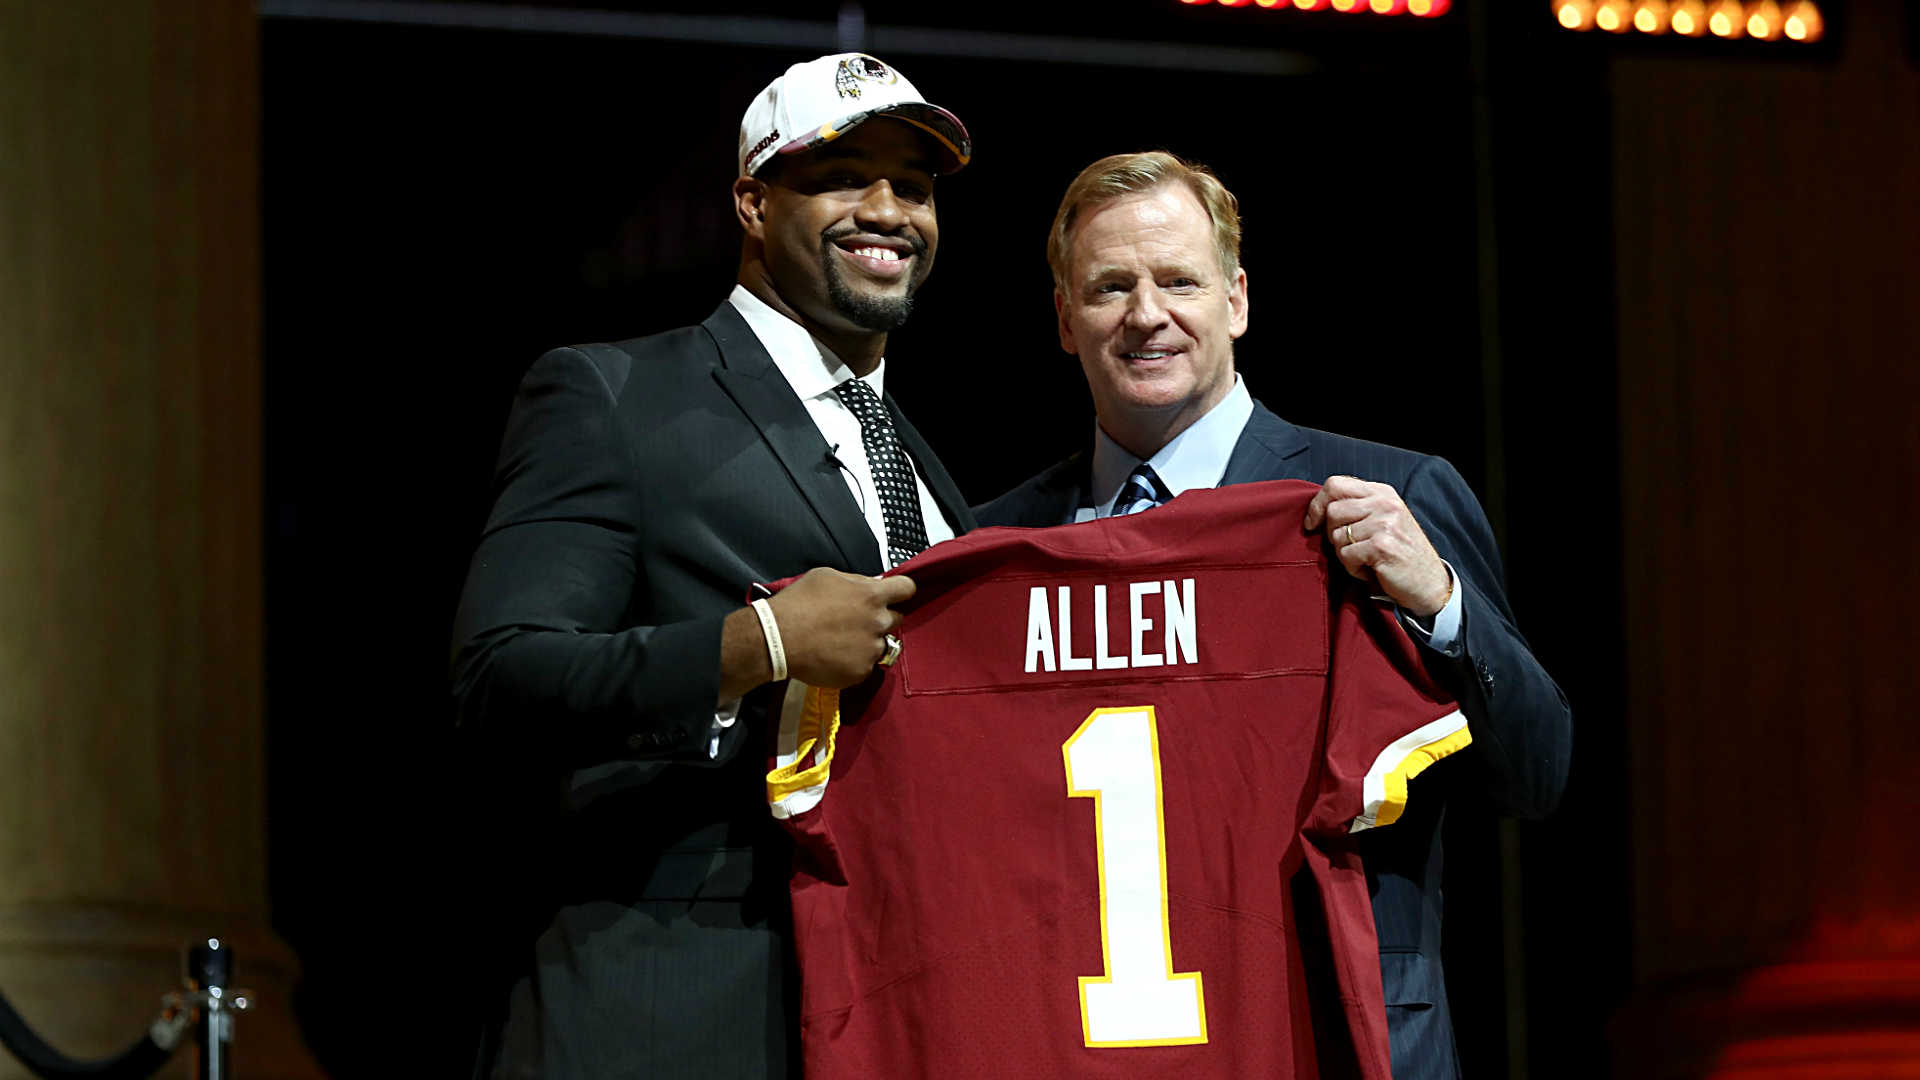 Road Show: Majority of NFL teams interested in hosting draft